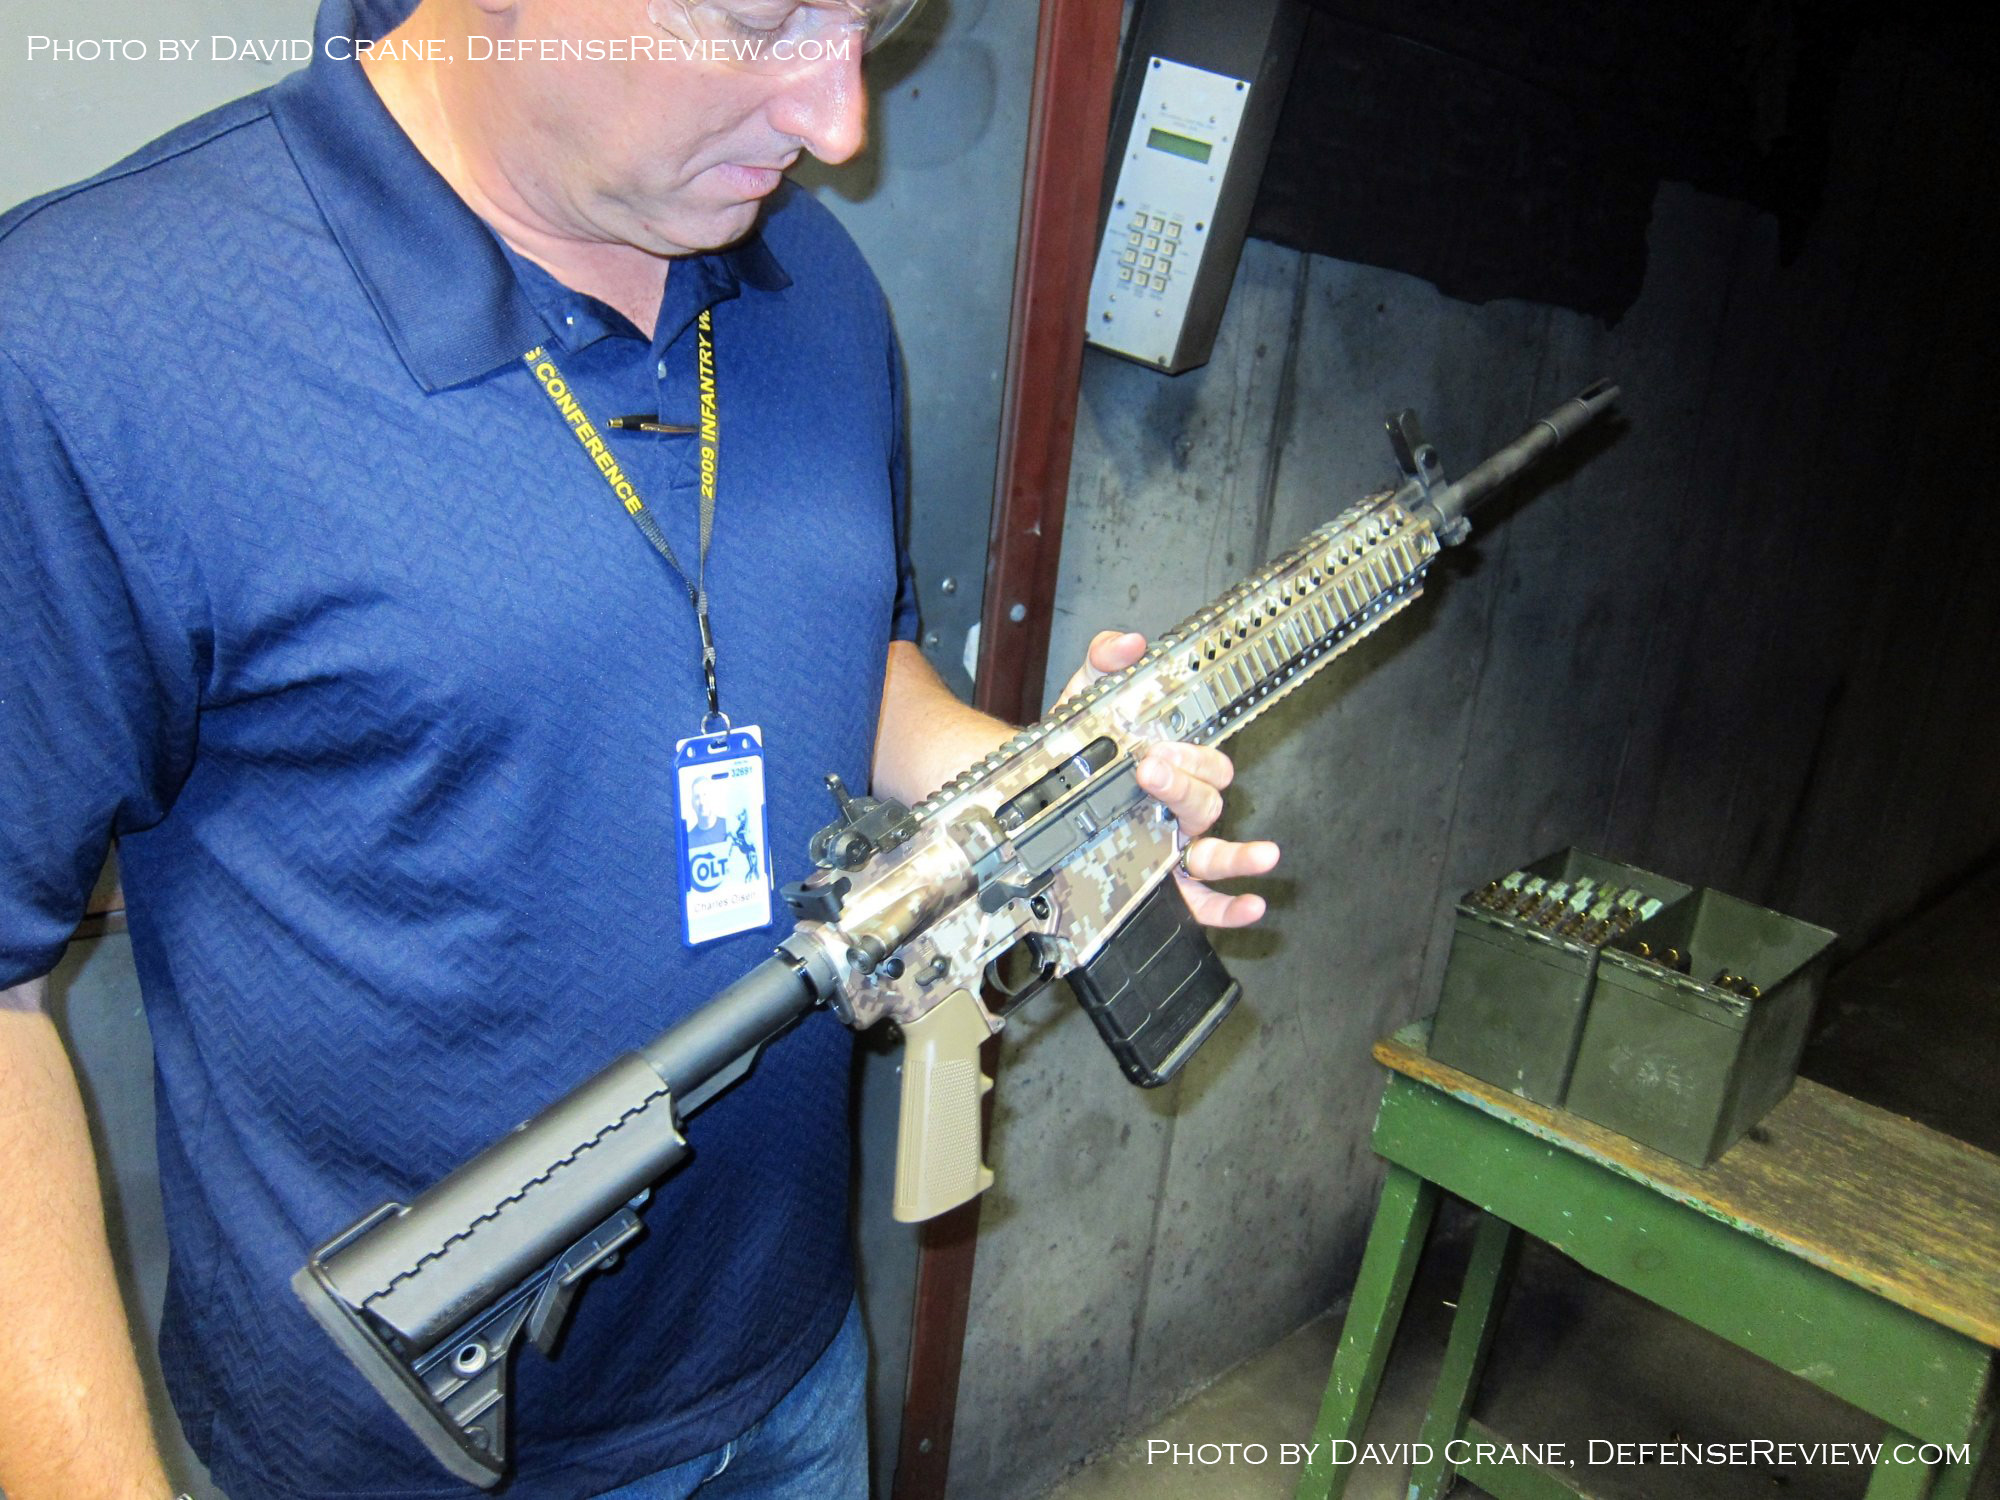 Colt CM901 Chuck Olsen David Crane DefenseReview.com 3 Small <!  :en  >DR Exclusive First Look!: SCAR Who? Meet the Colt Modular Carbine (CMC) Model CM901 Multi Caliber 7.62mm NATO Battle Rifle / 5.56mm NATO Assault Rifle for U.S. Military Special Operations Forces (SOF) and General Infantry Forces (GIF). DefenseReview (DR) Reports (Photos and Video!) <!  :  >